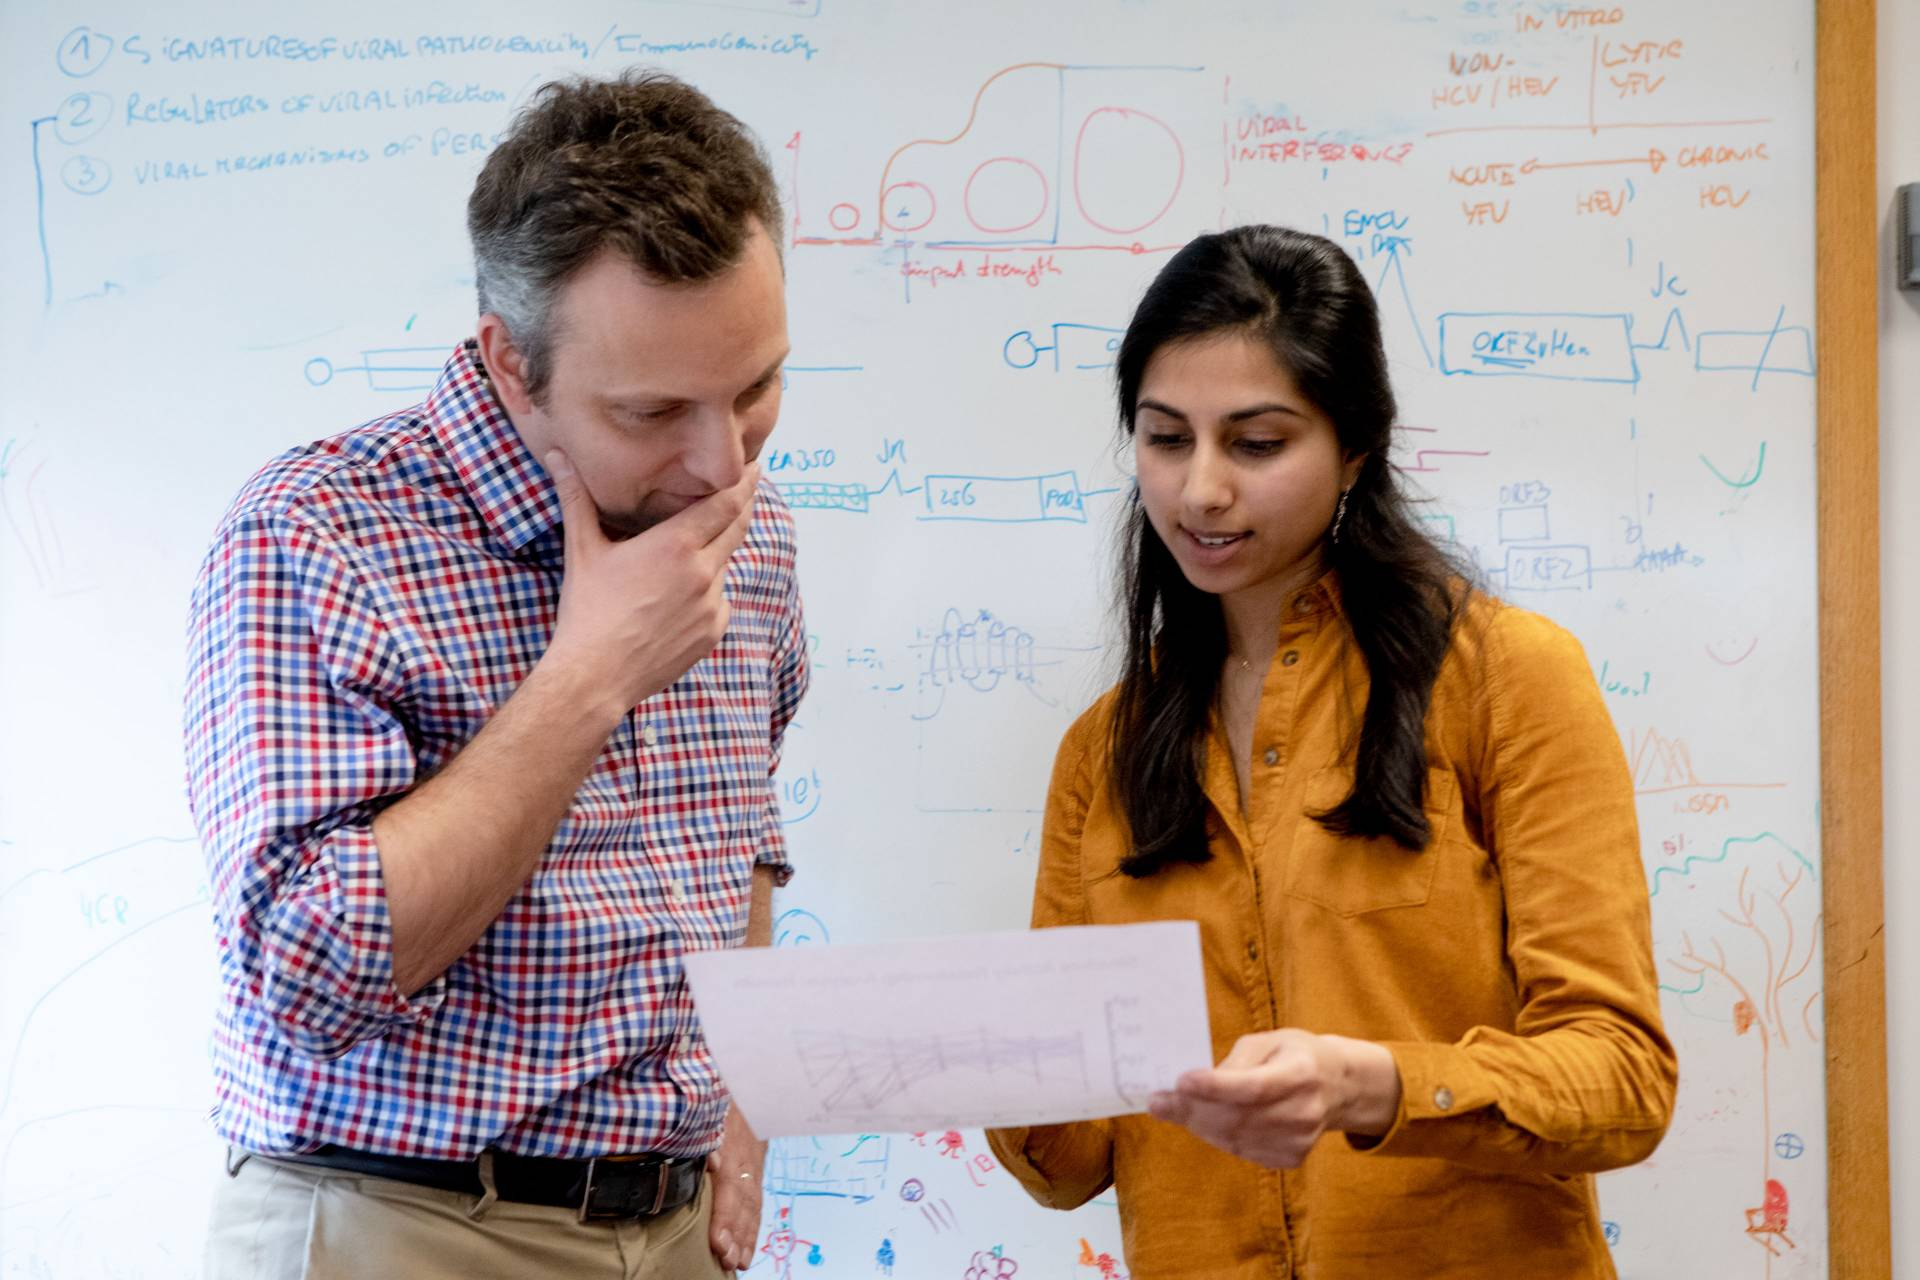 Alexander Ploss and Ila Nimgaonkar looking at paper